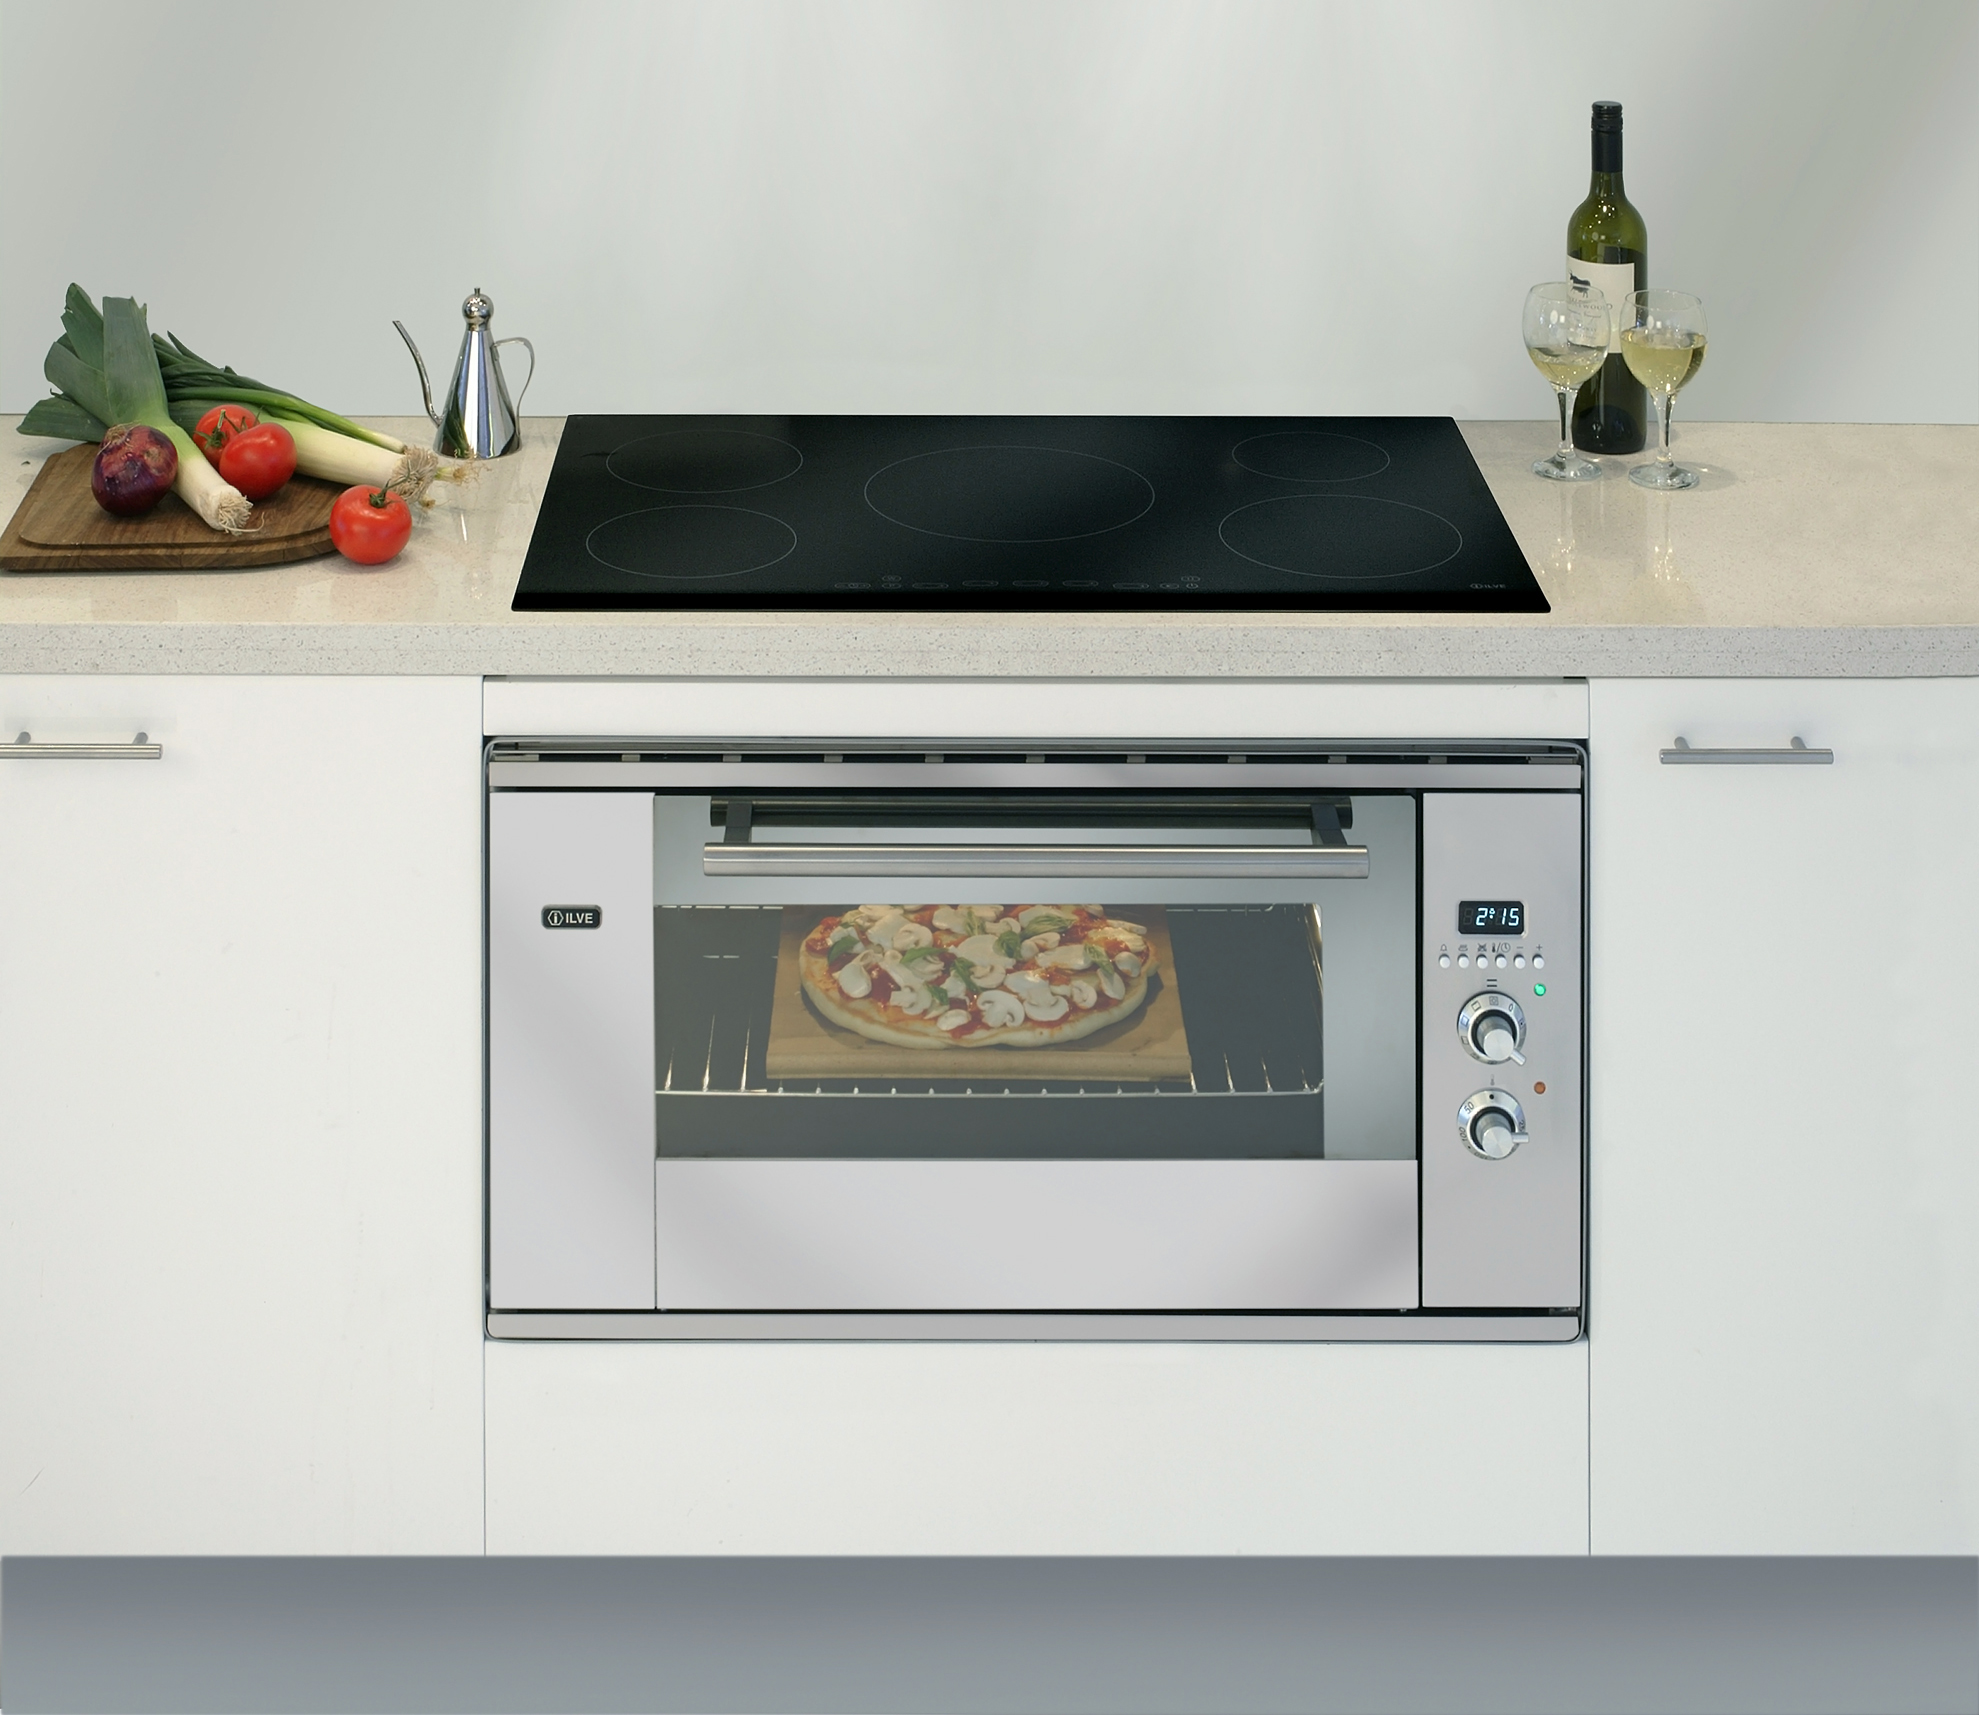 Induction Cooking, ILVE Induction Cooktops, ILVE